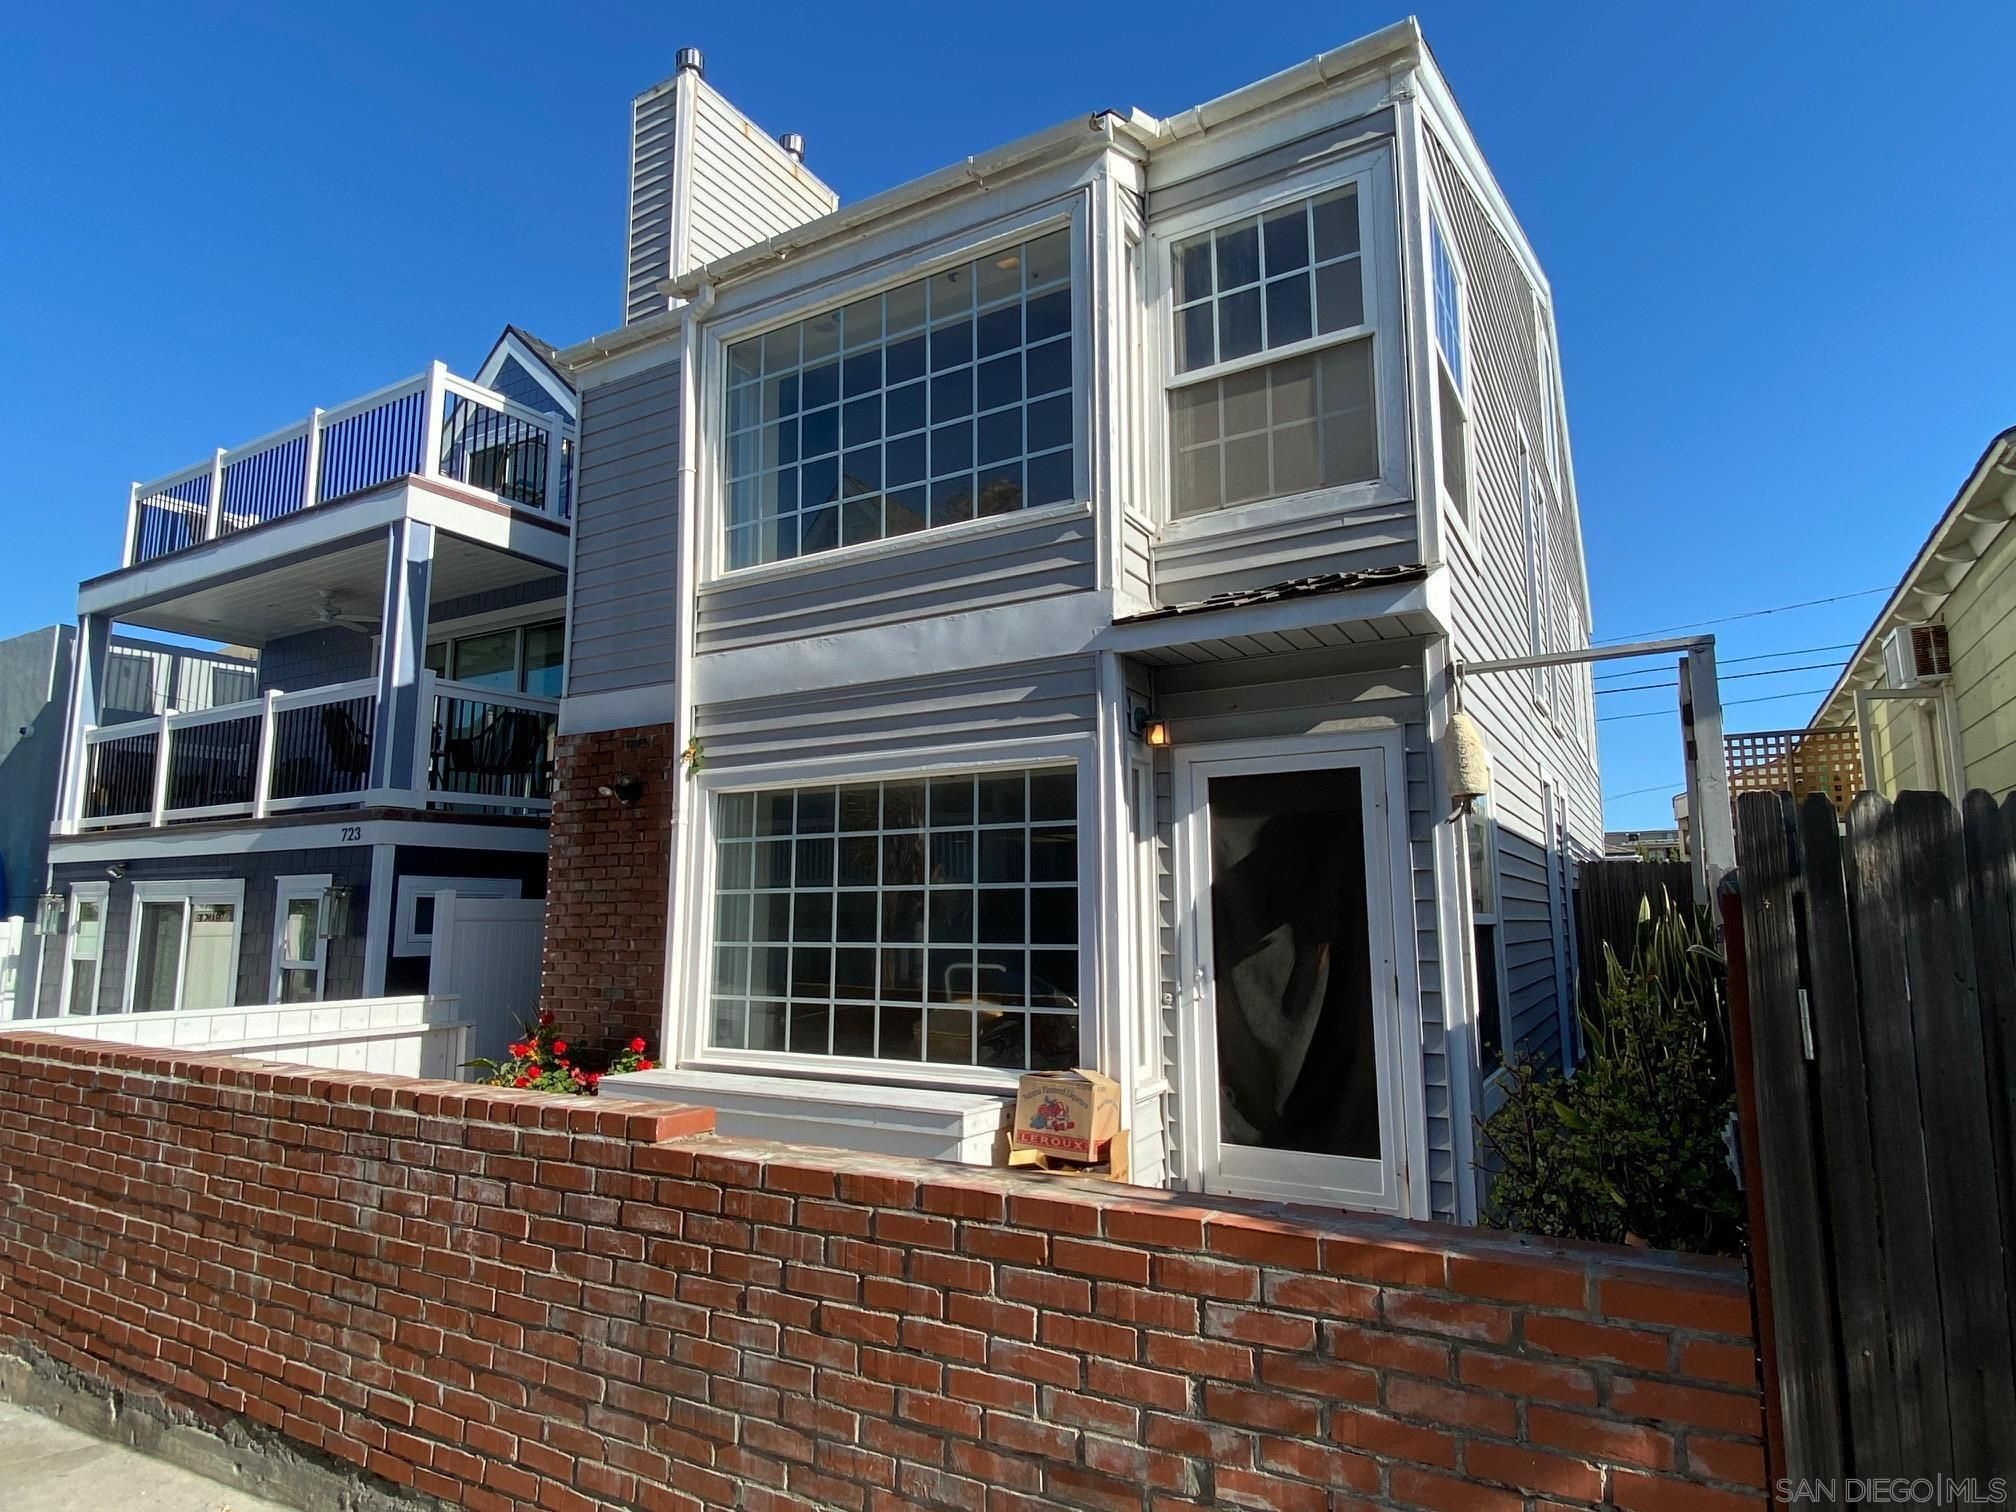 Main Photo: MISSION BEACH House for sale : 3 bedrooms : 719 Seagirt Ct in San Diego